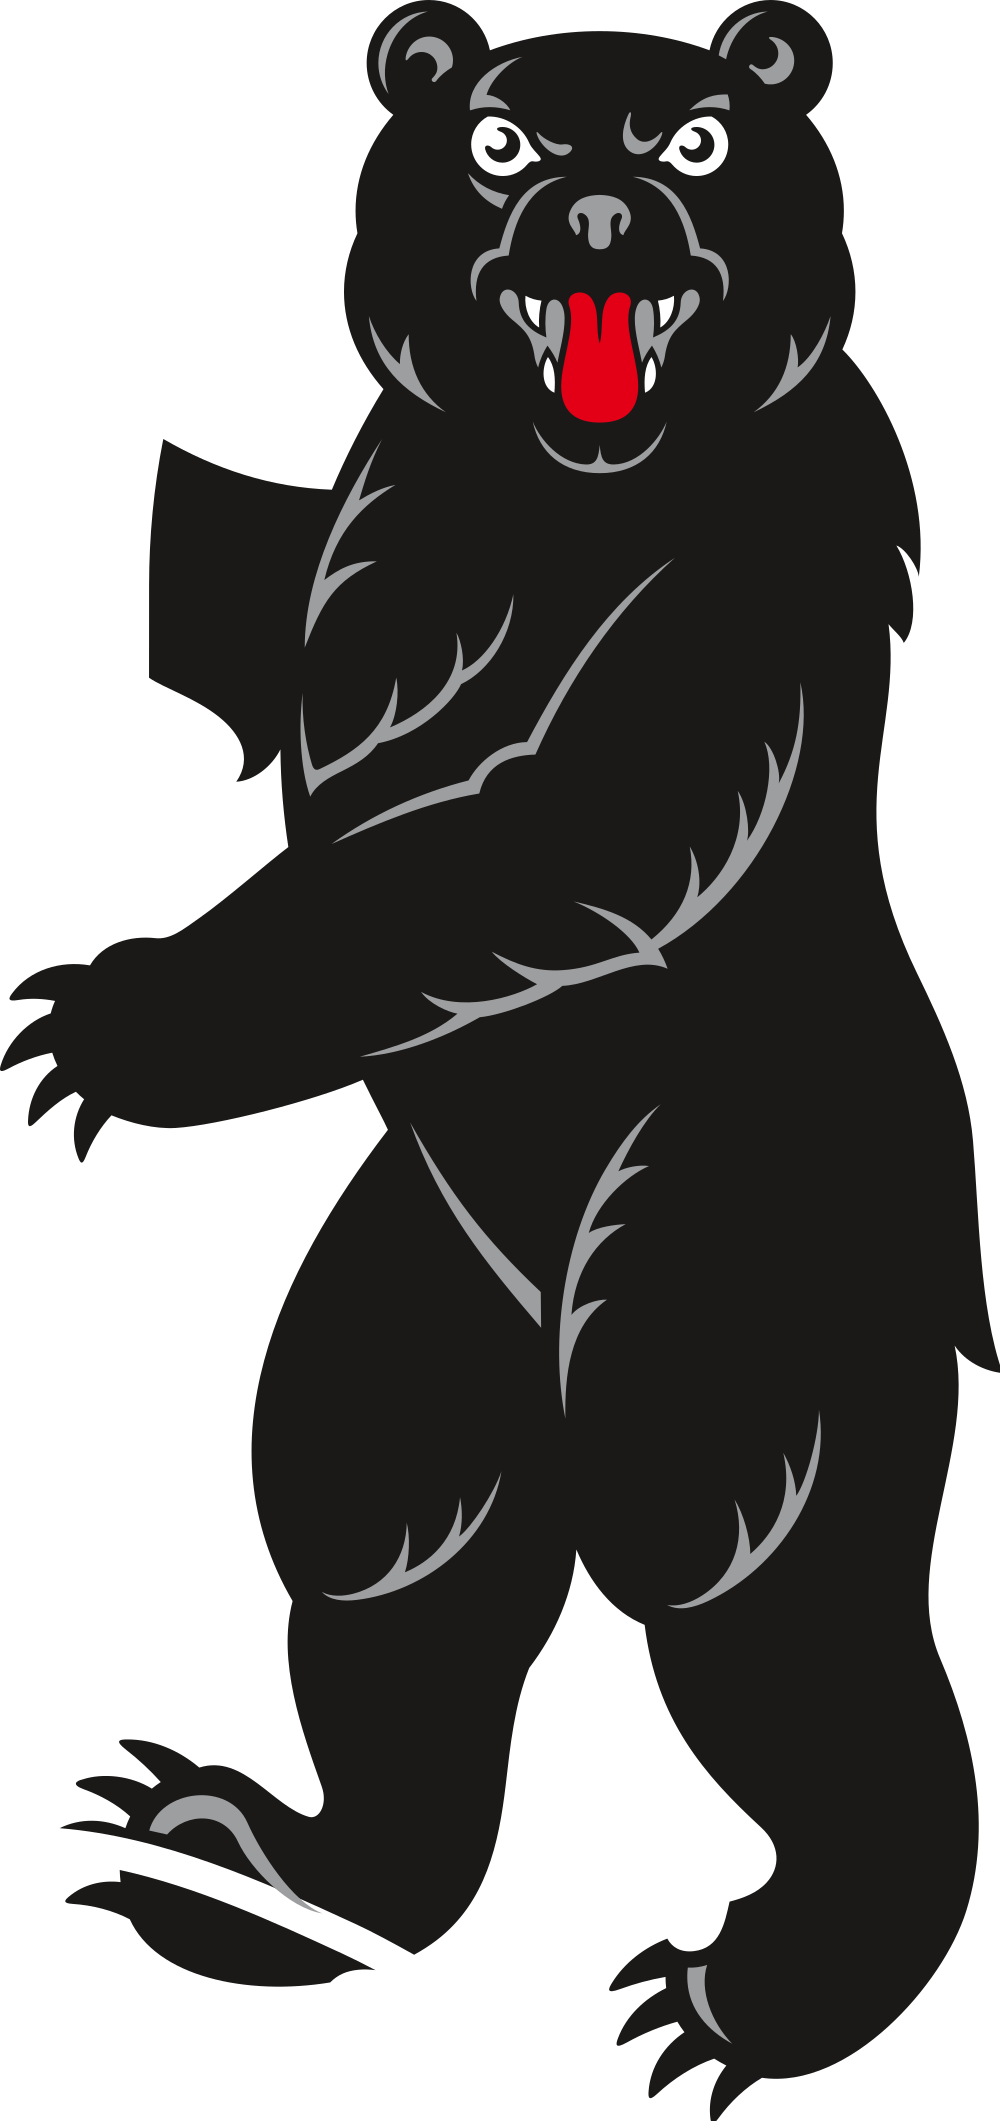 jpg library library File bear from coat. Ape clipart gorilla arm